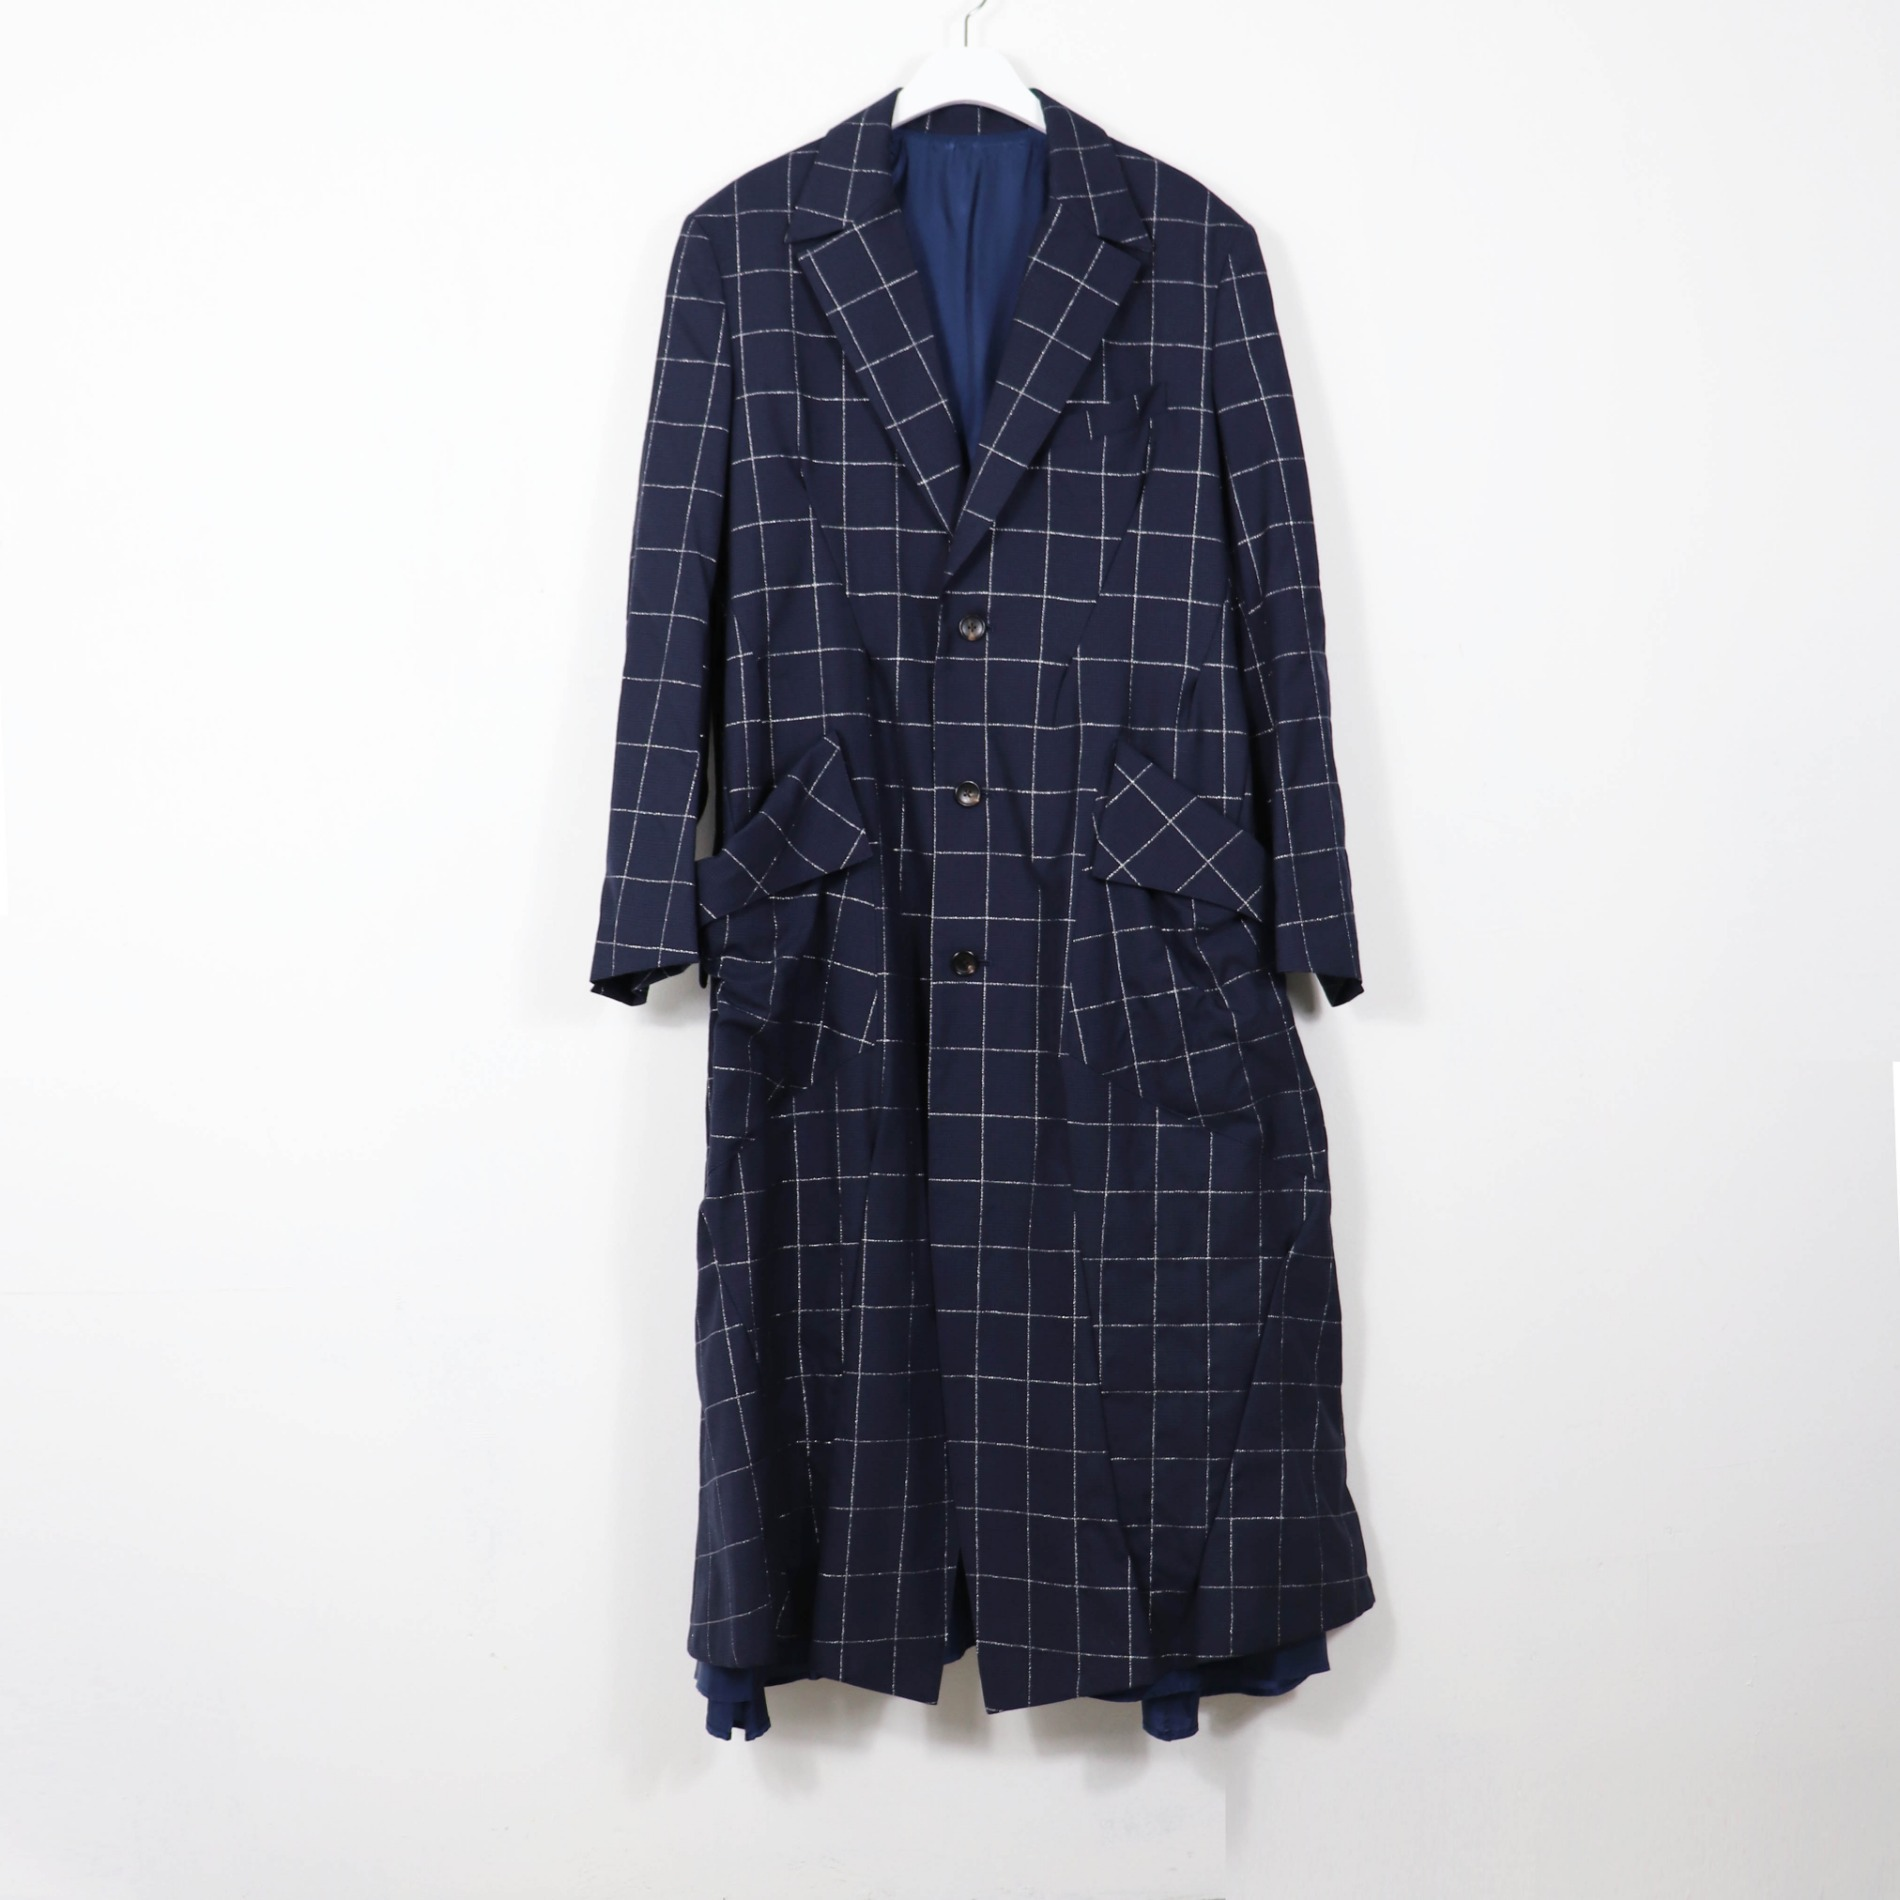 AW20 SULVAM DARTS LONG COAT NAVY